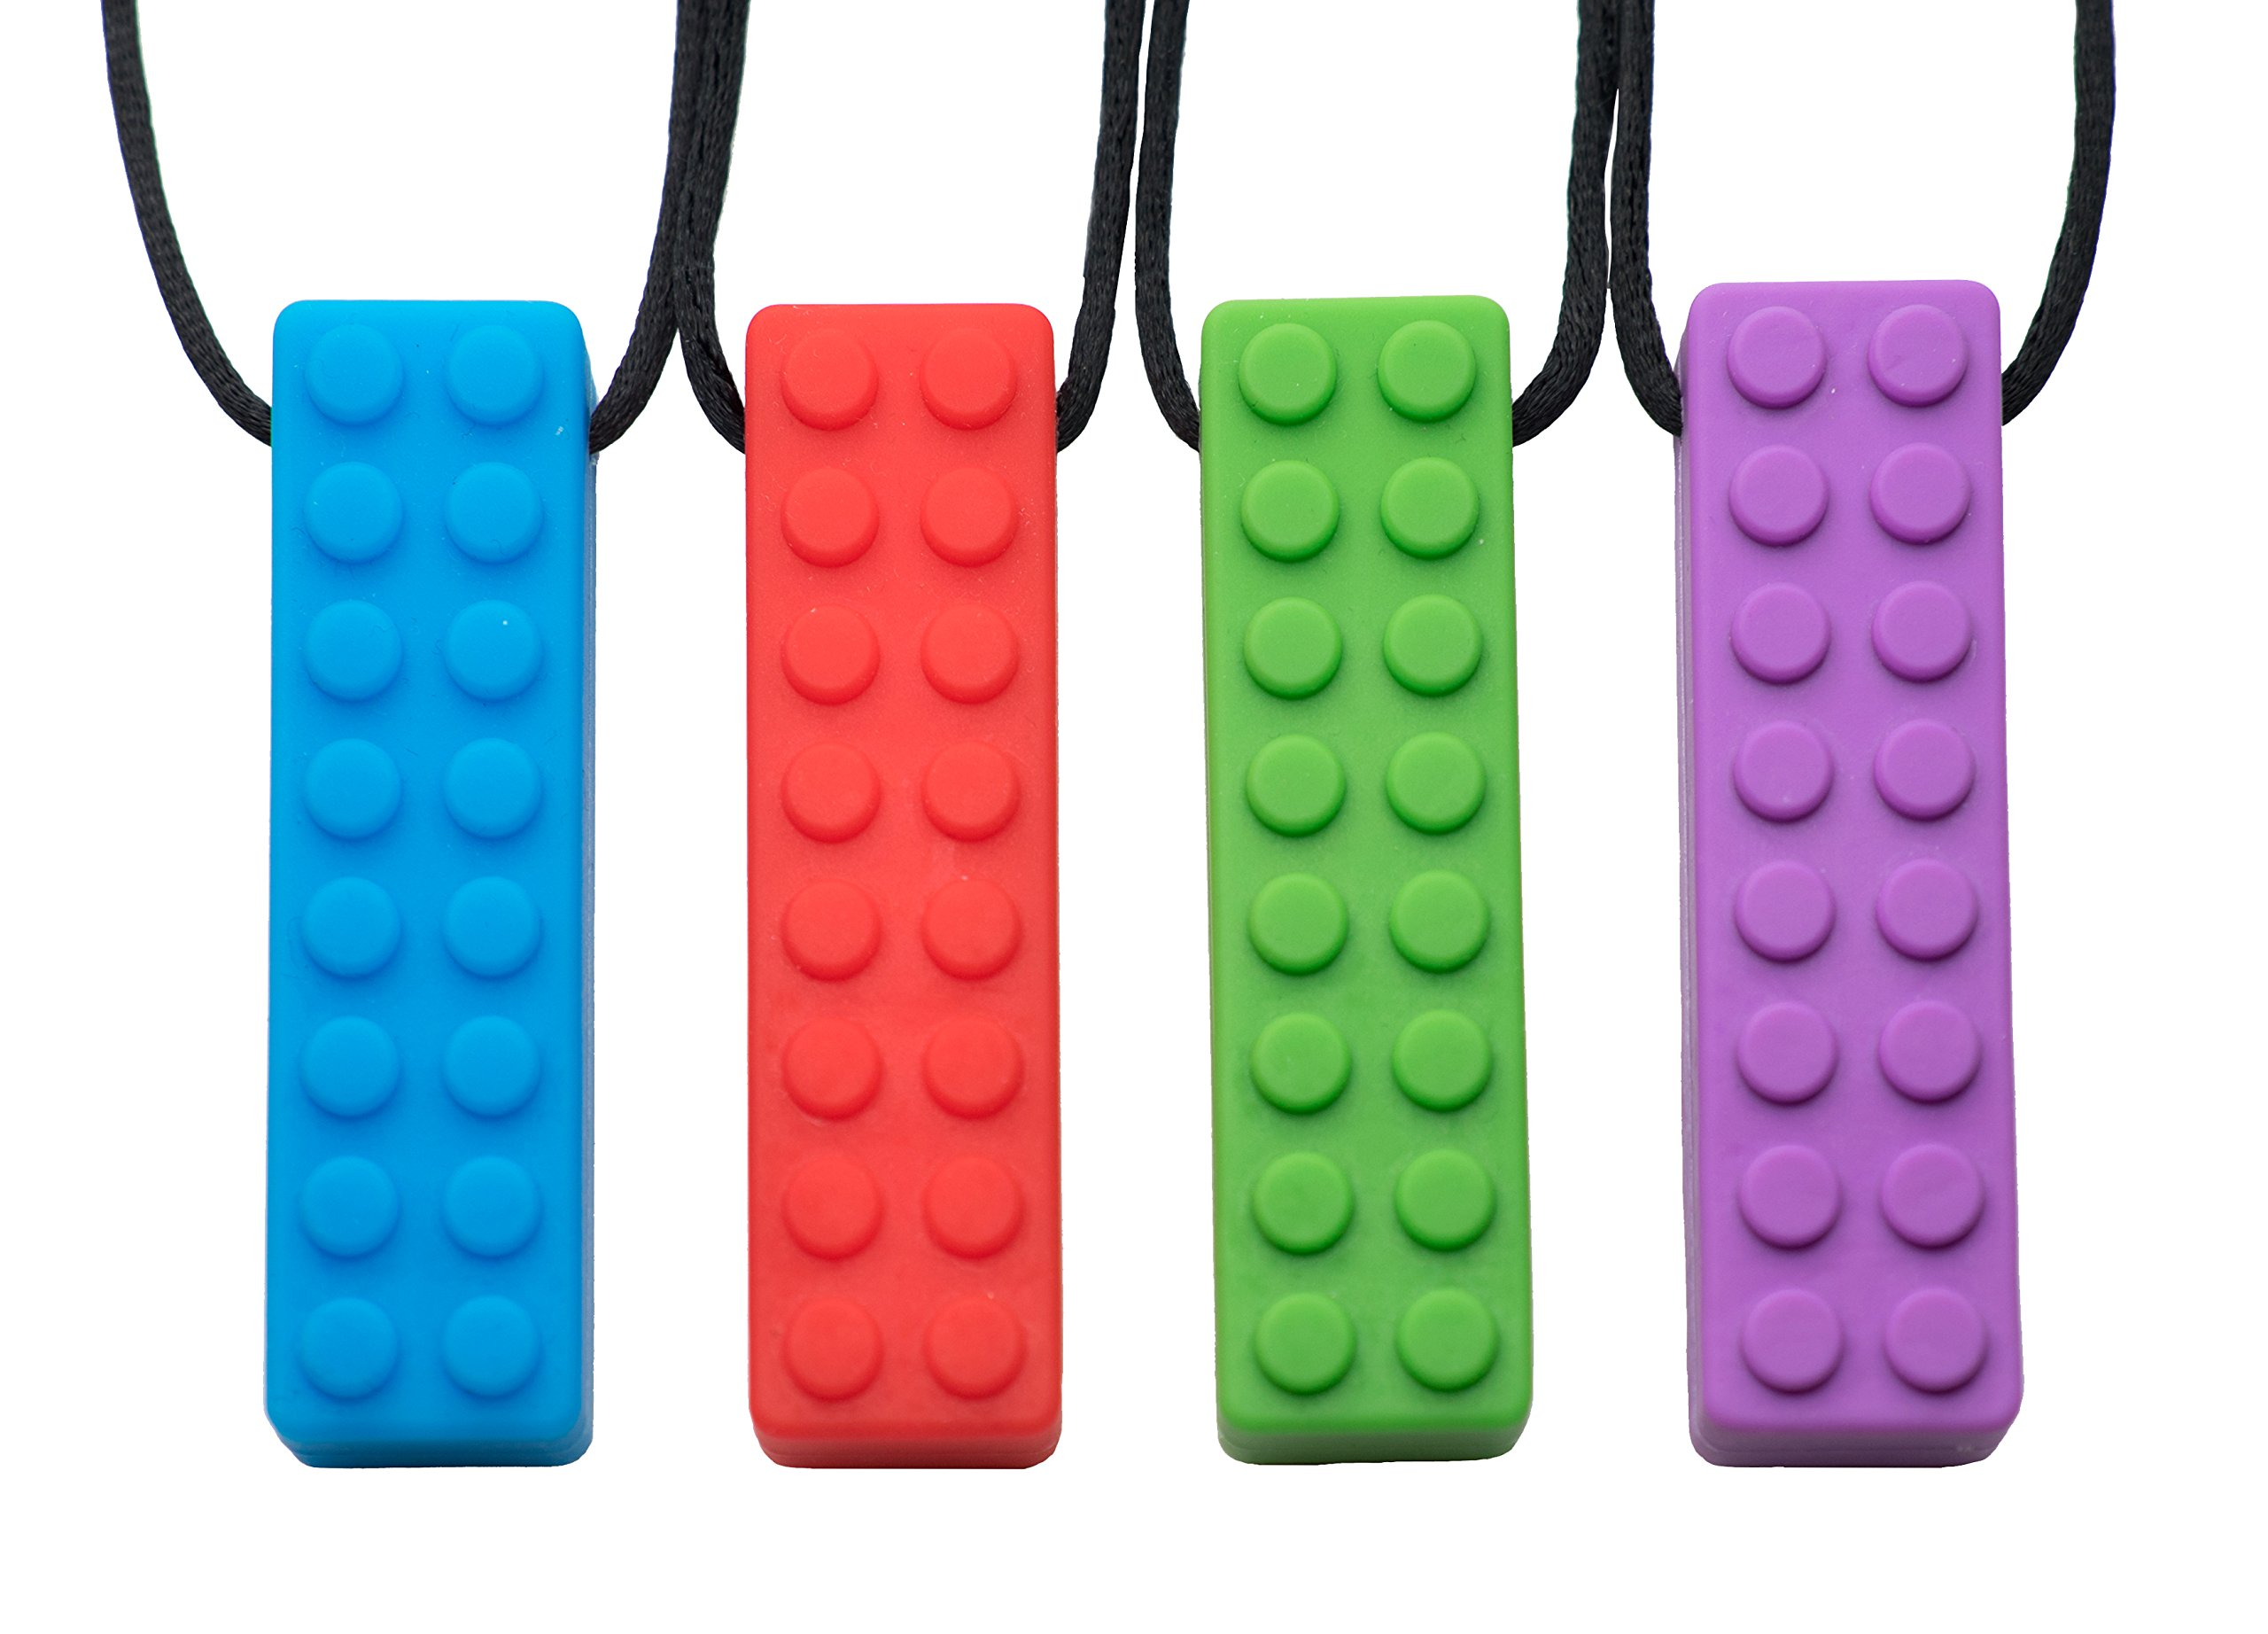 Chew Chew Sensory Lego Teether Necklace 4-Pack – Best for Autism, Biting and Teething Kids – Durable and Strong Silicone Chewy Toys - Chewing Pendant for Boys & Girls - Fidget Chewlery Necklaces